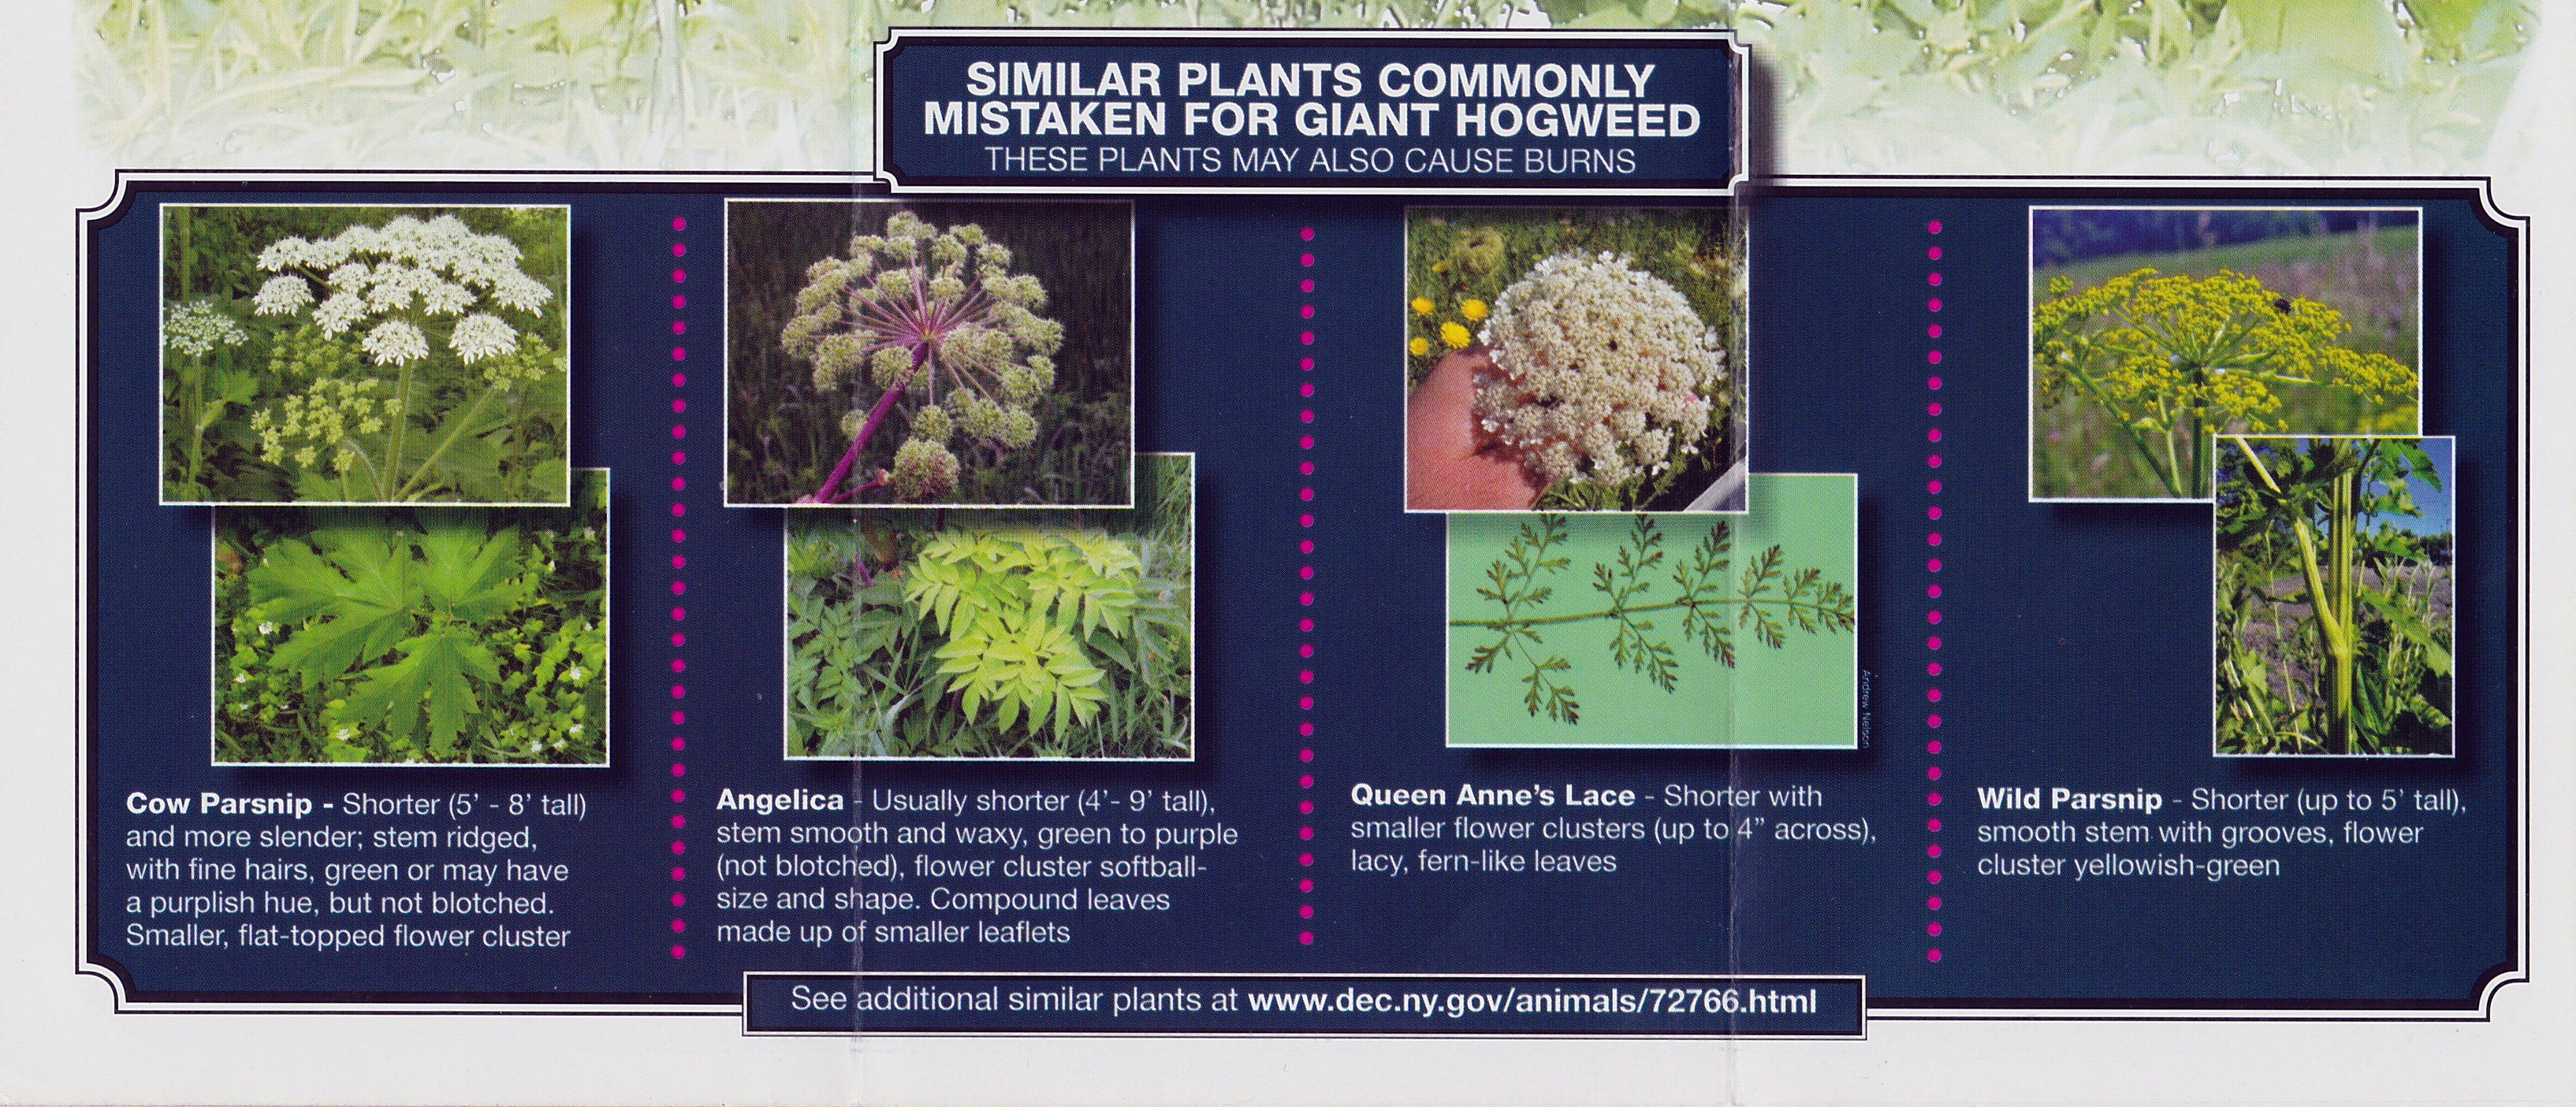 Common Plants Mistaken For Giant Hogweed Credit Nydec Click To Enlarge